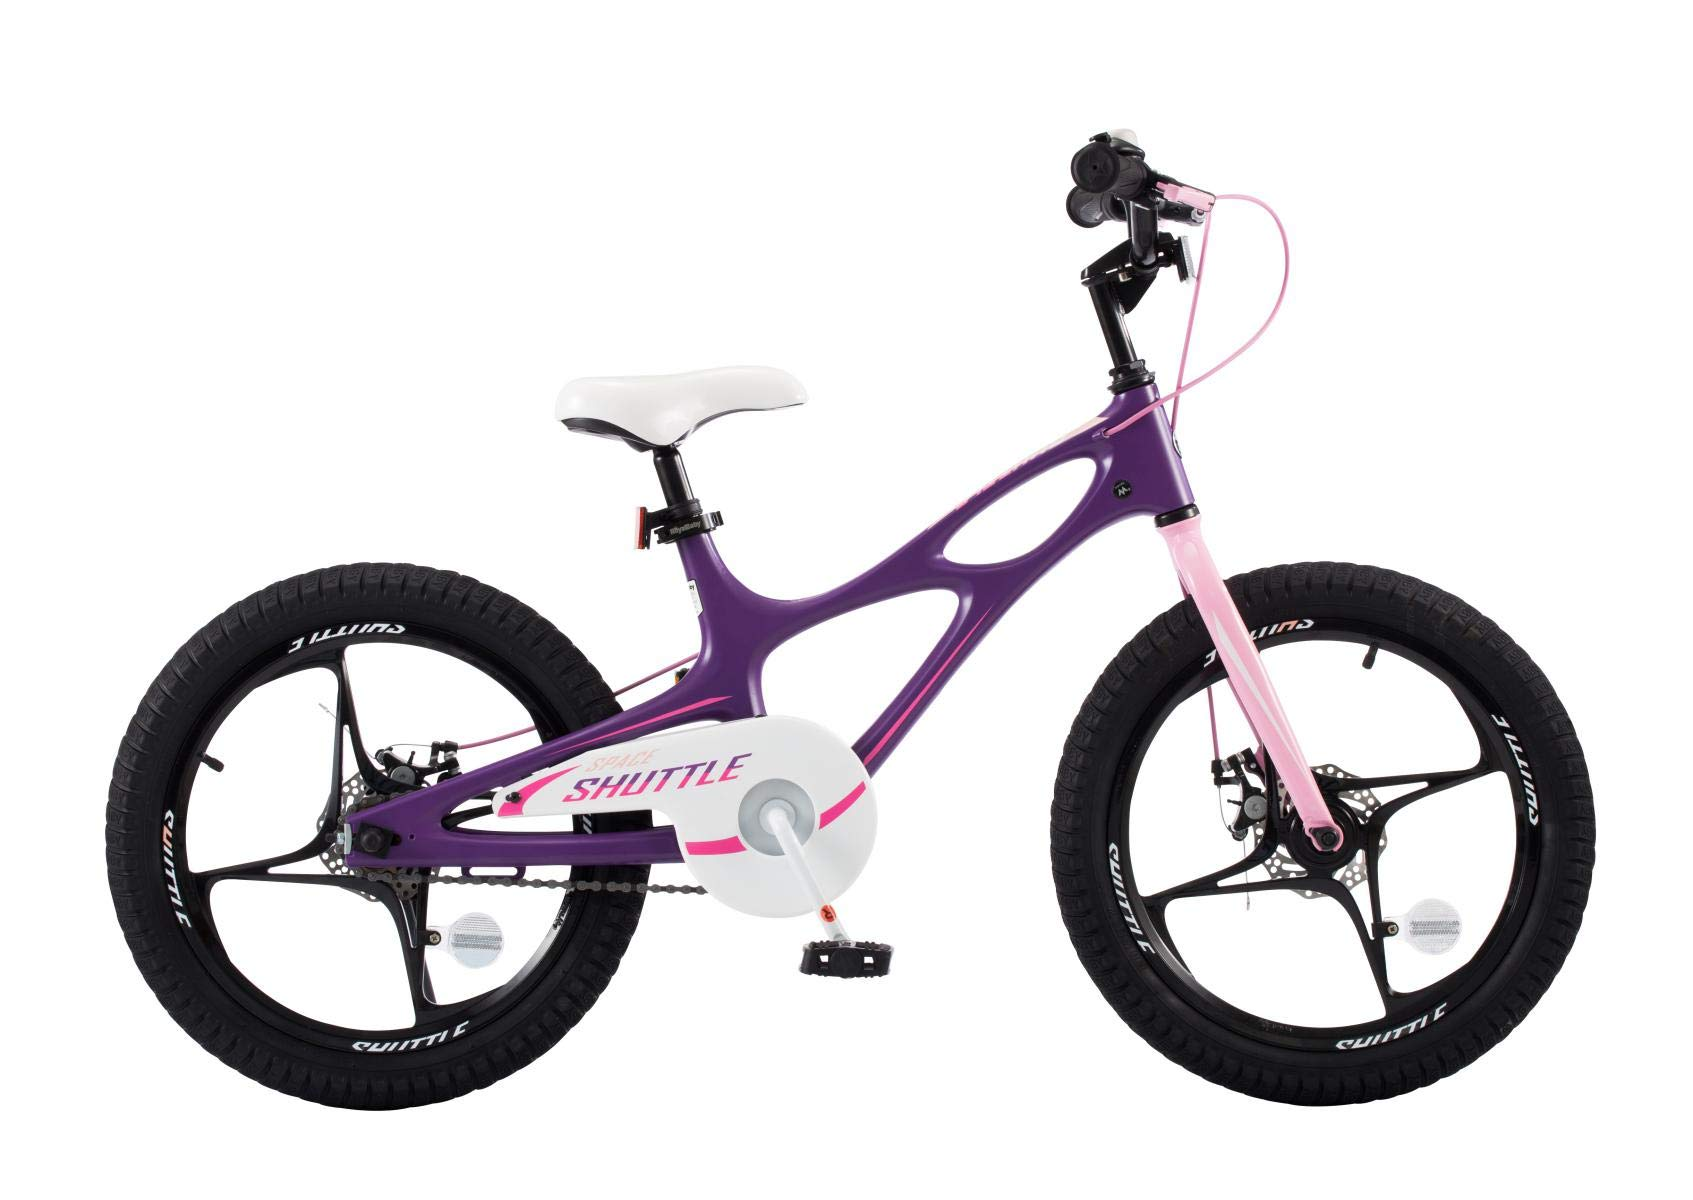 Royalbaby Space Shuttle Lightweight Magnesium Kid's Bike with Disc Brakes for Boys and Girls, 18 inch with Kickstand, Lilac